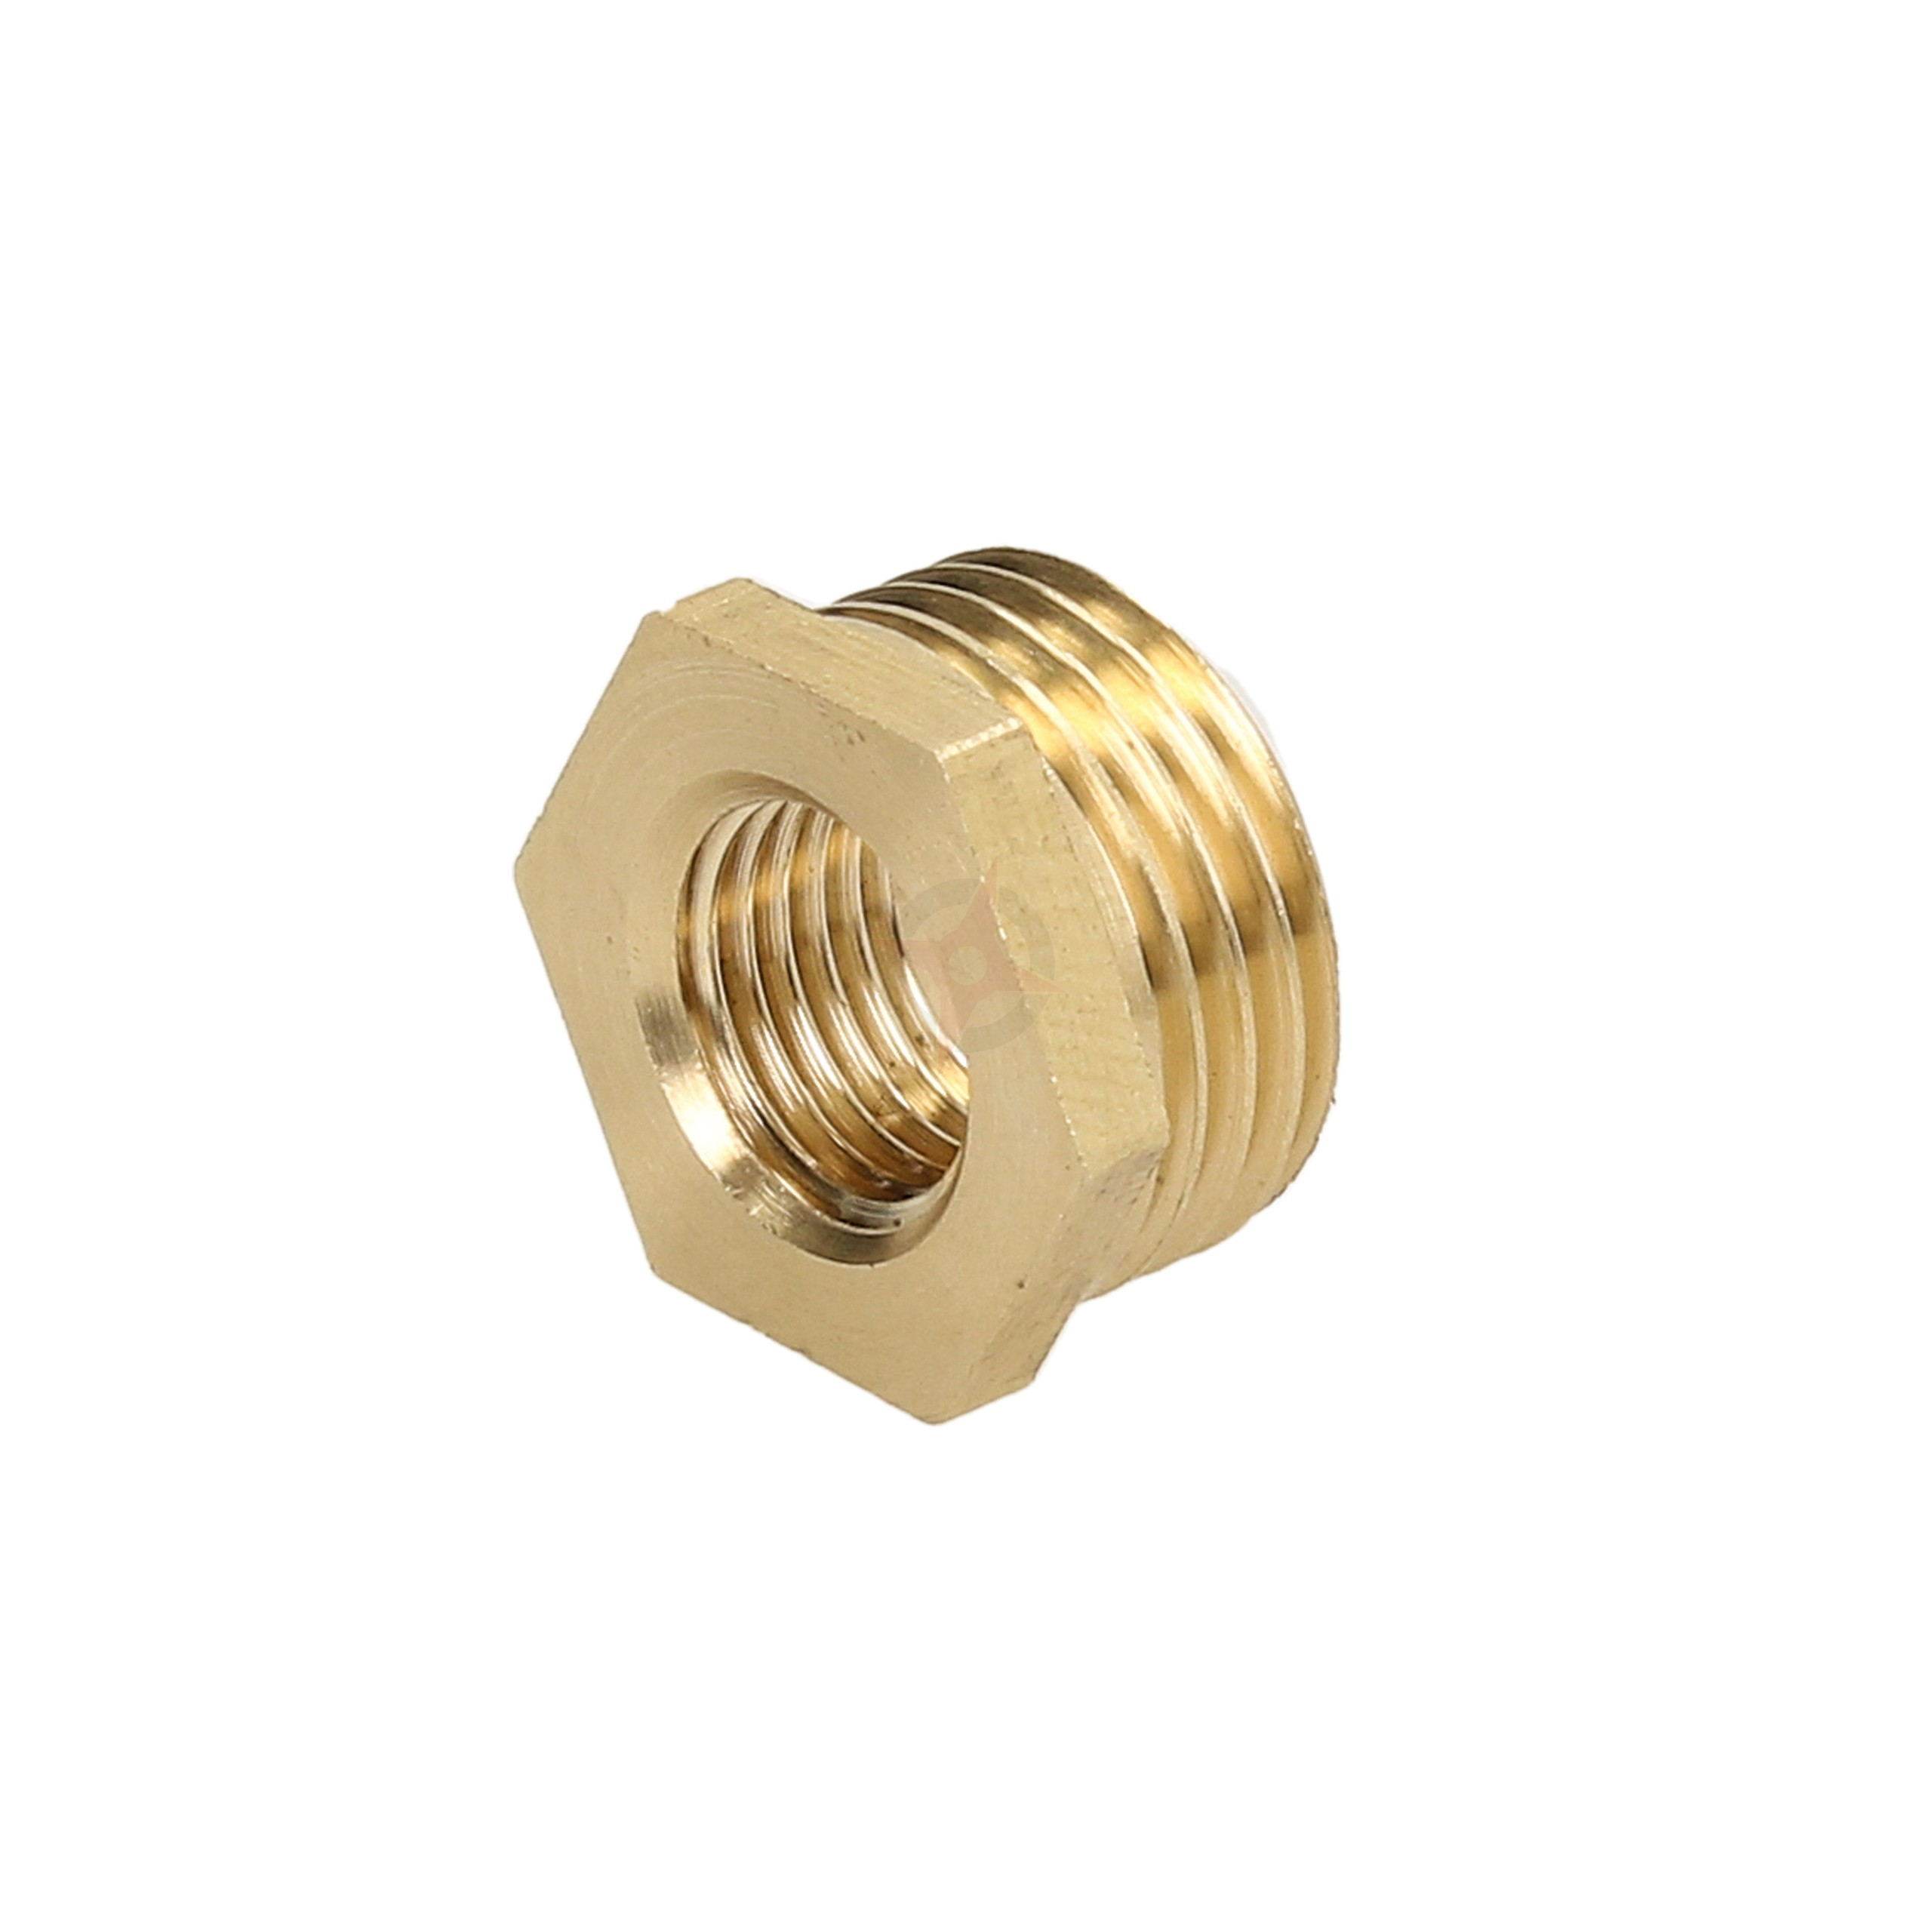 "Brass 1/2"" x 1/4"" Reducing Bush"